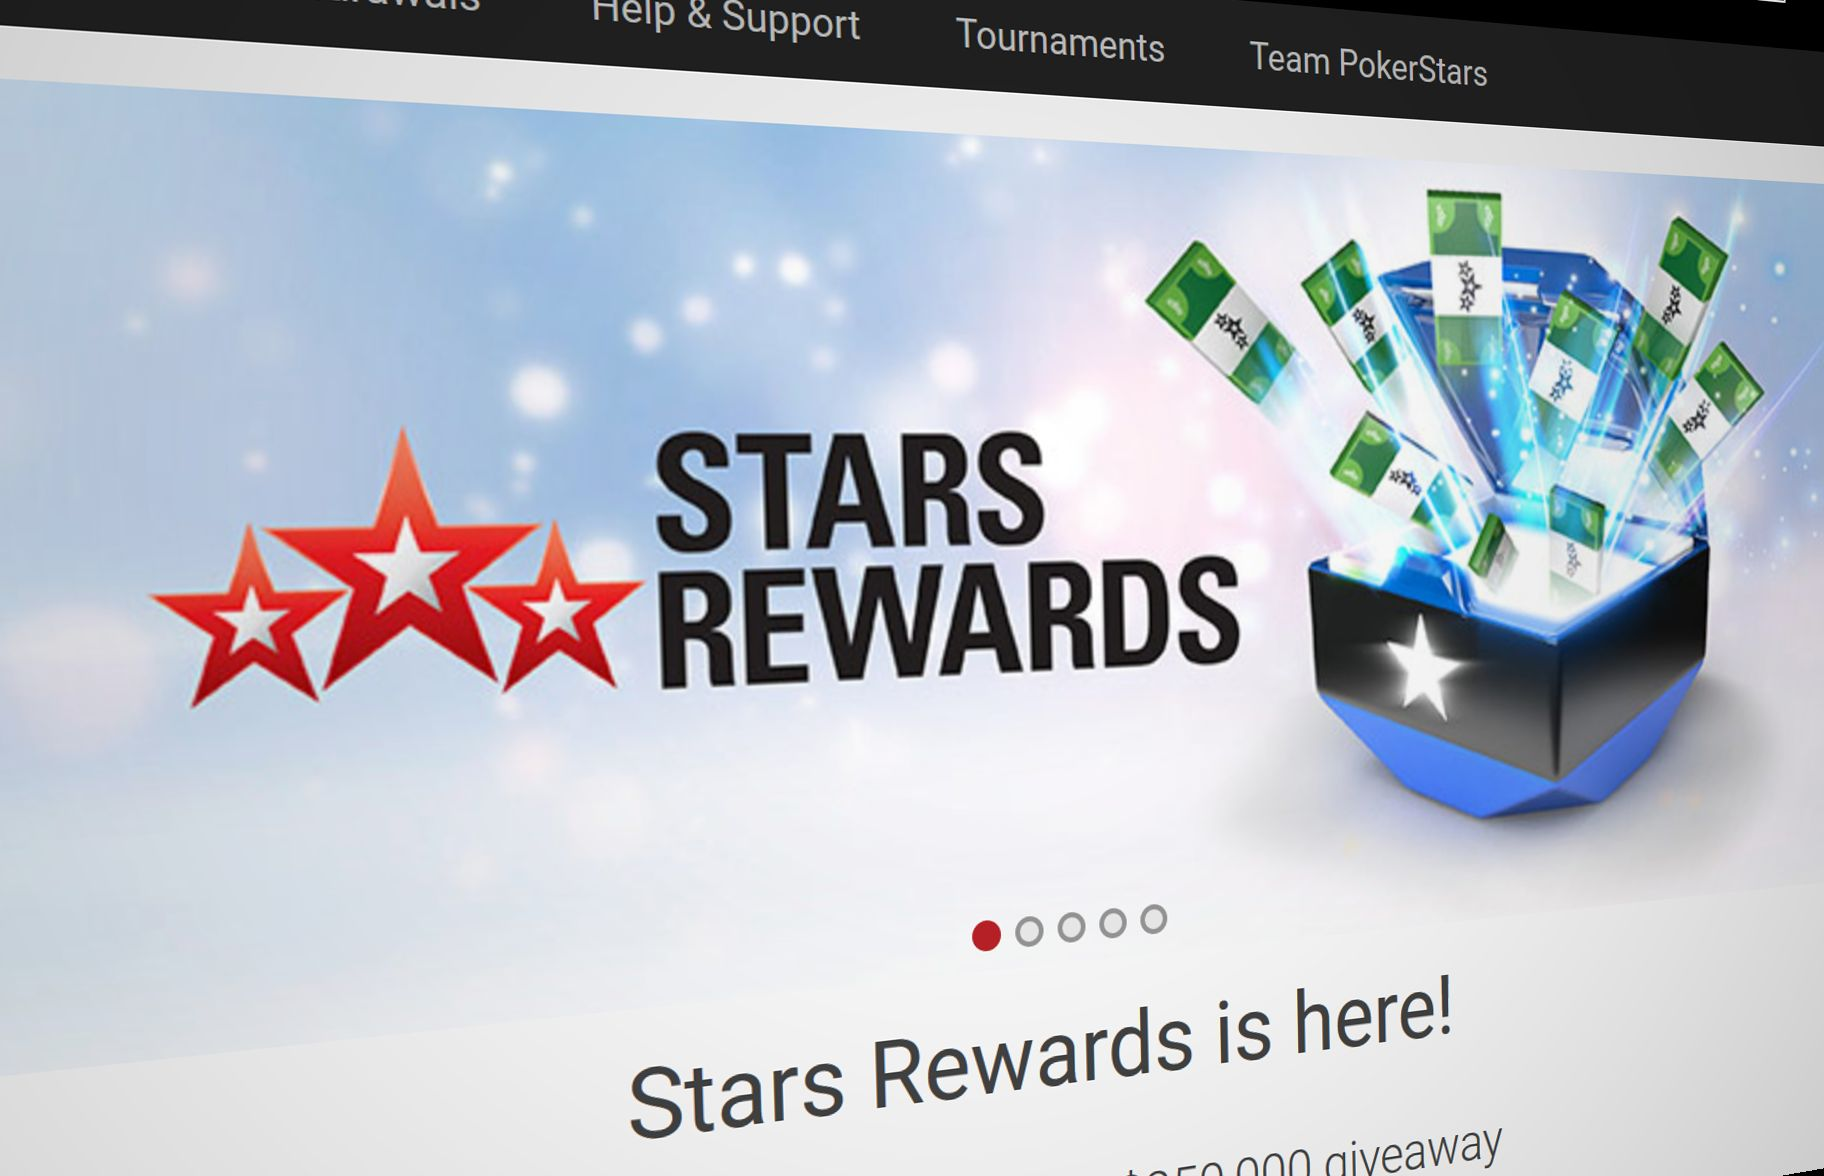 The world's largest online poker room has launched its randomized loyalty program Stars Rewards in the New Jersey market.